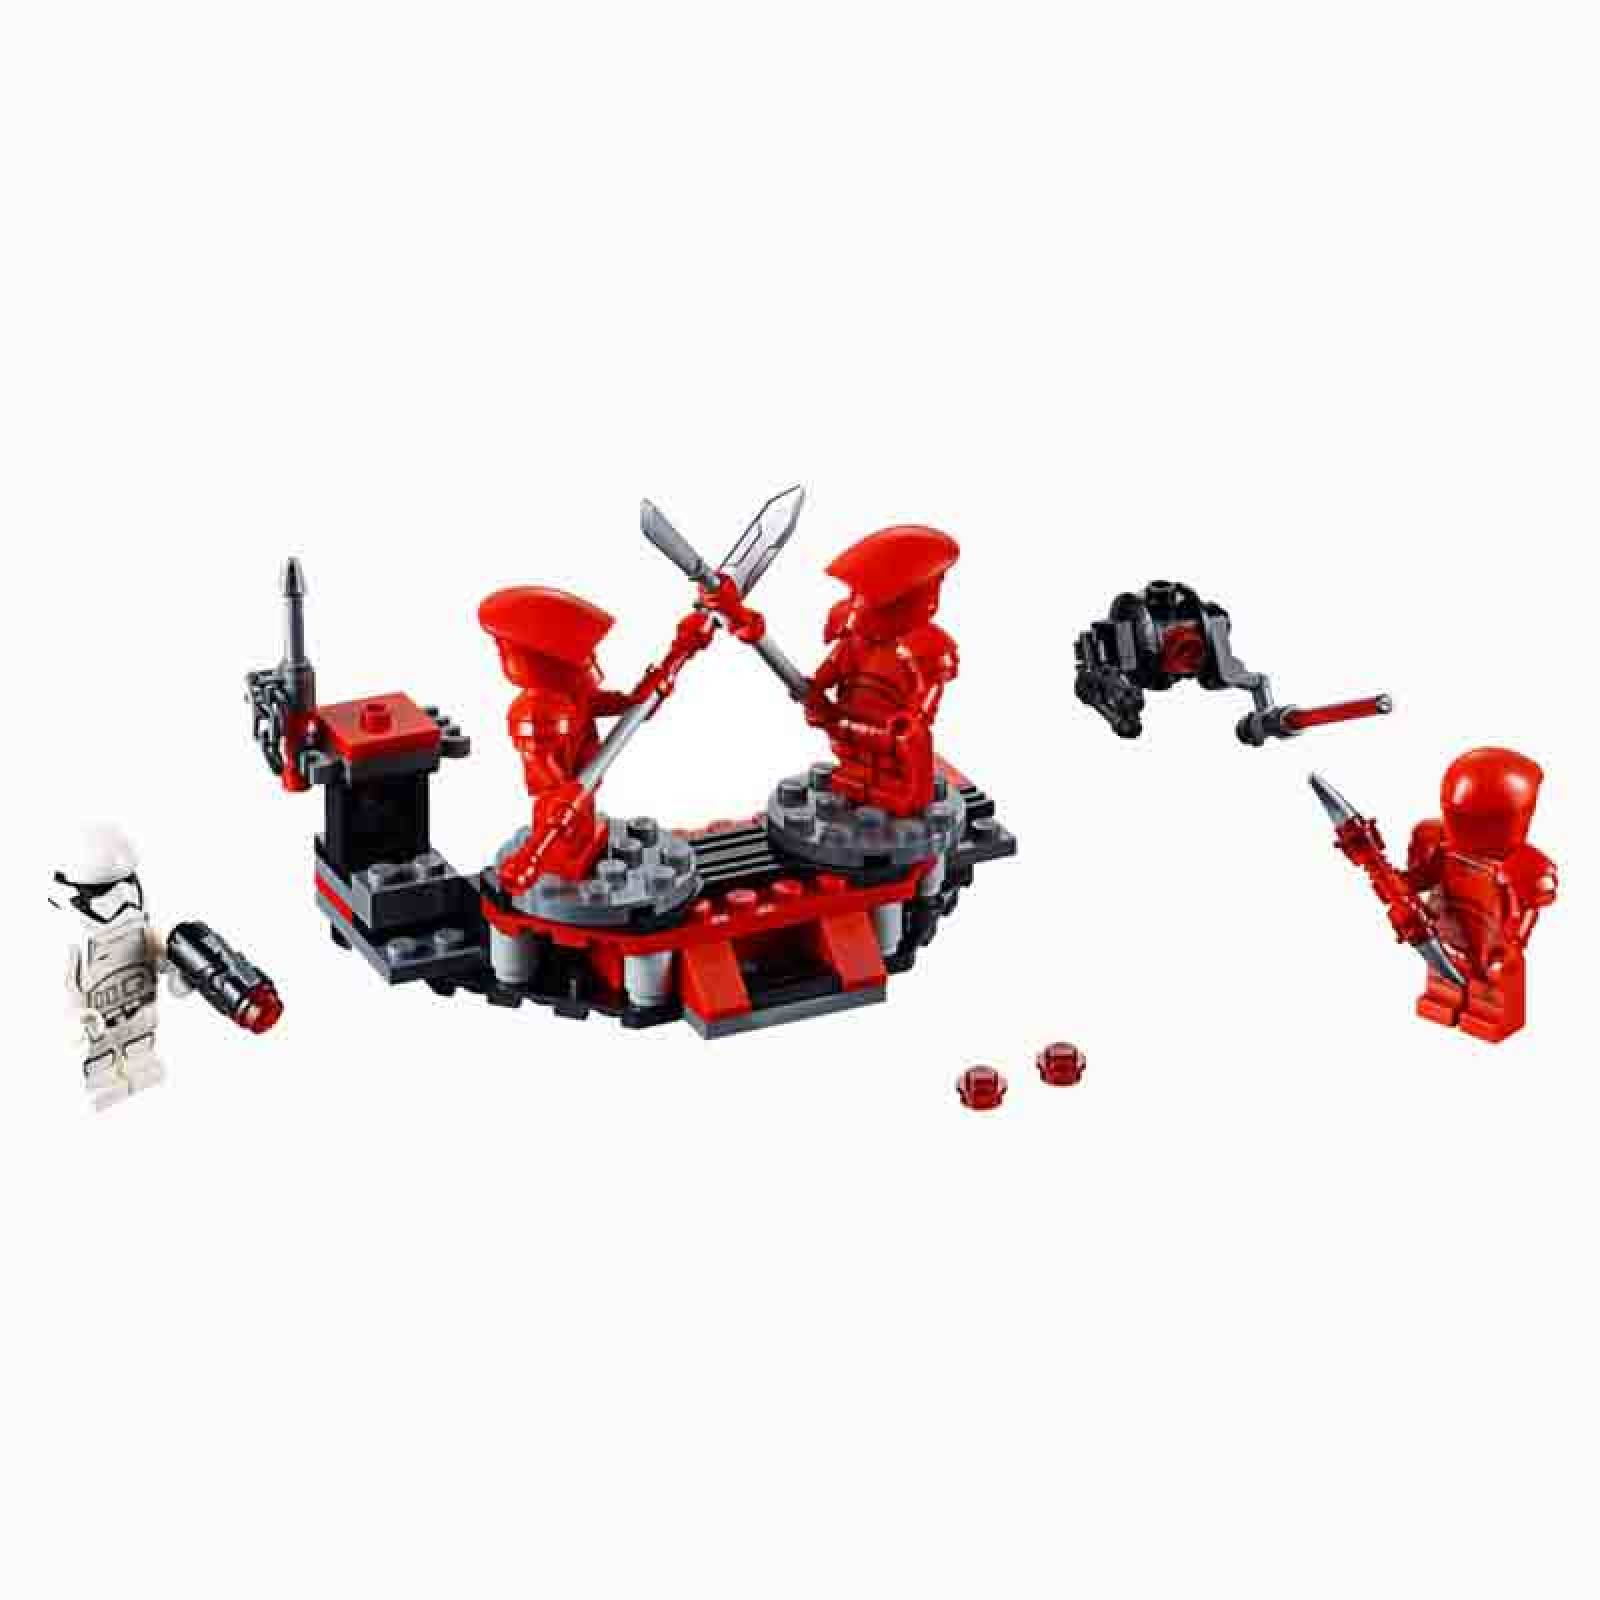 LEGO Star Wars Elite Praetorian Guard Battle Pack 75225 thumbnails